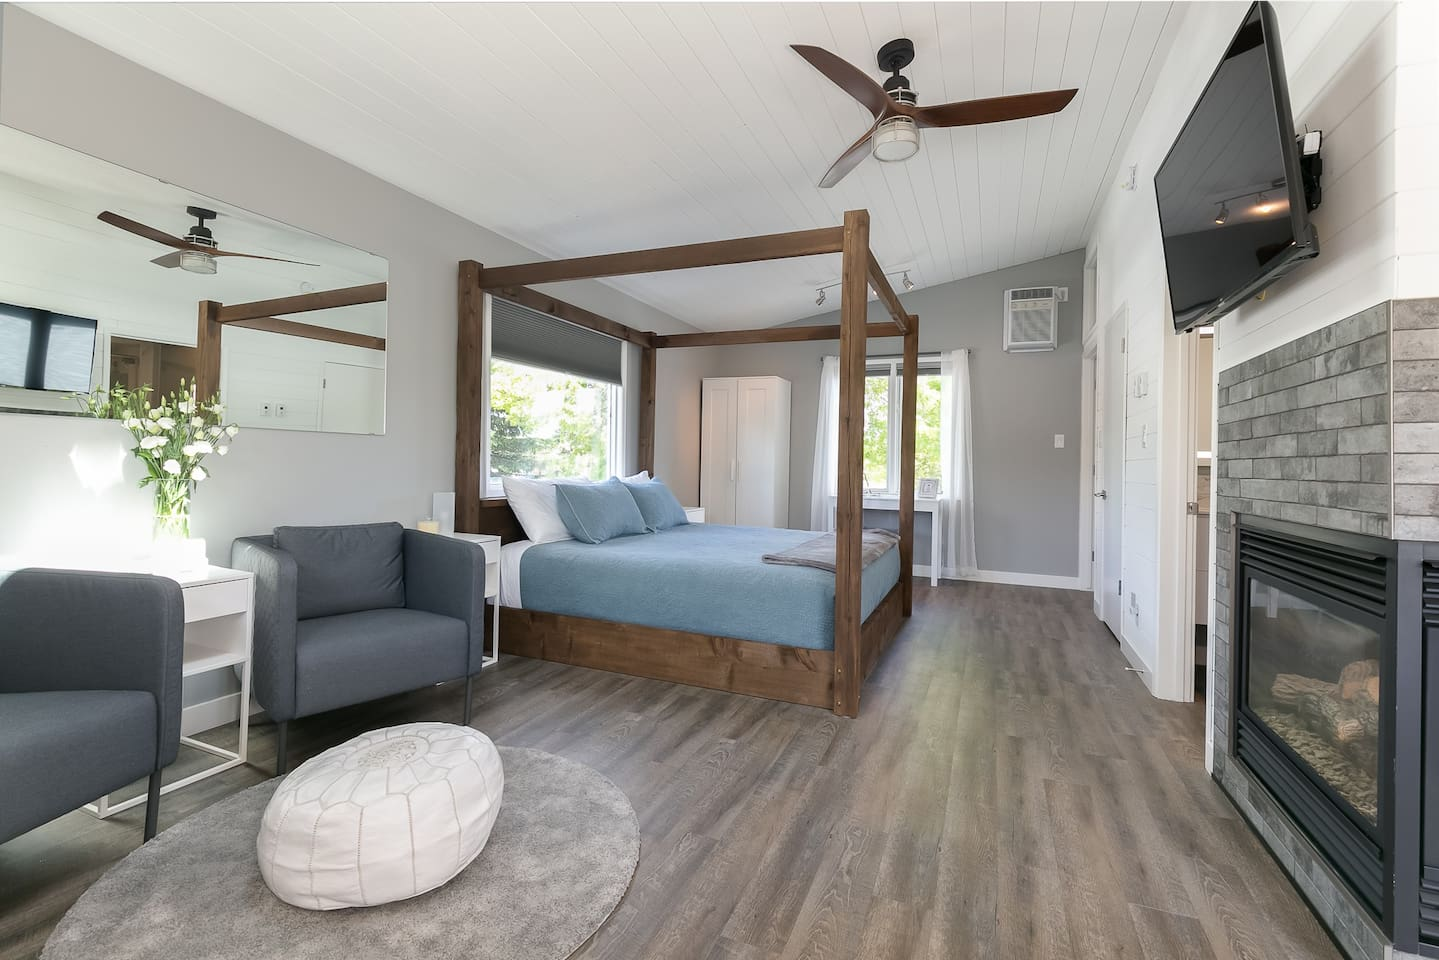 Step into this open-concept studio suite. This stunning King-sized bed is so inviting!